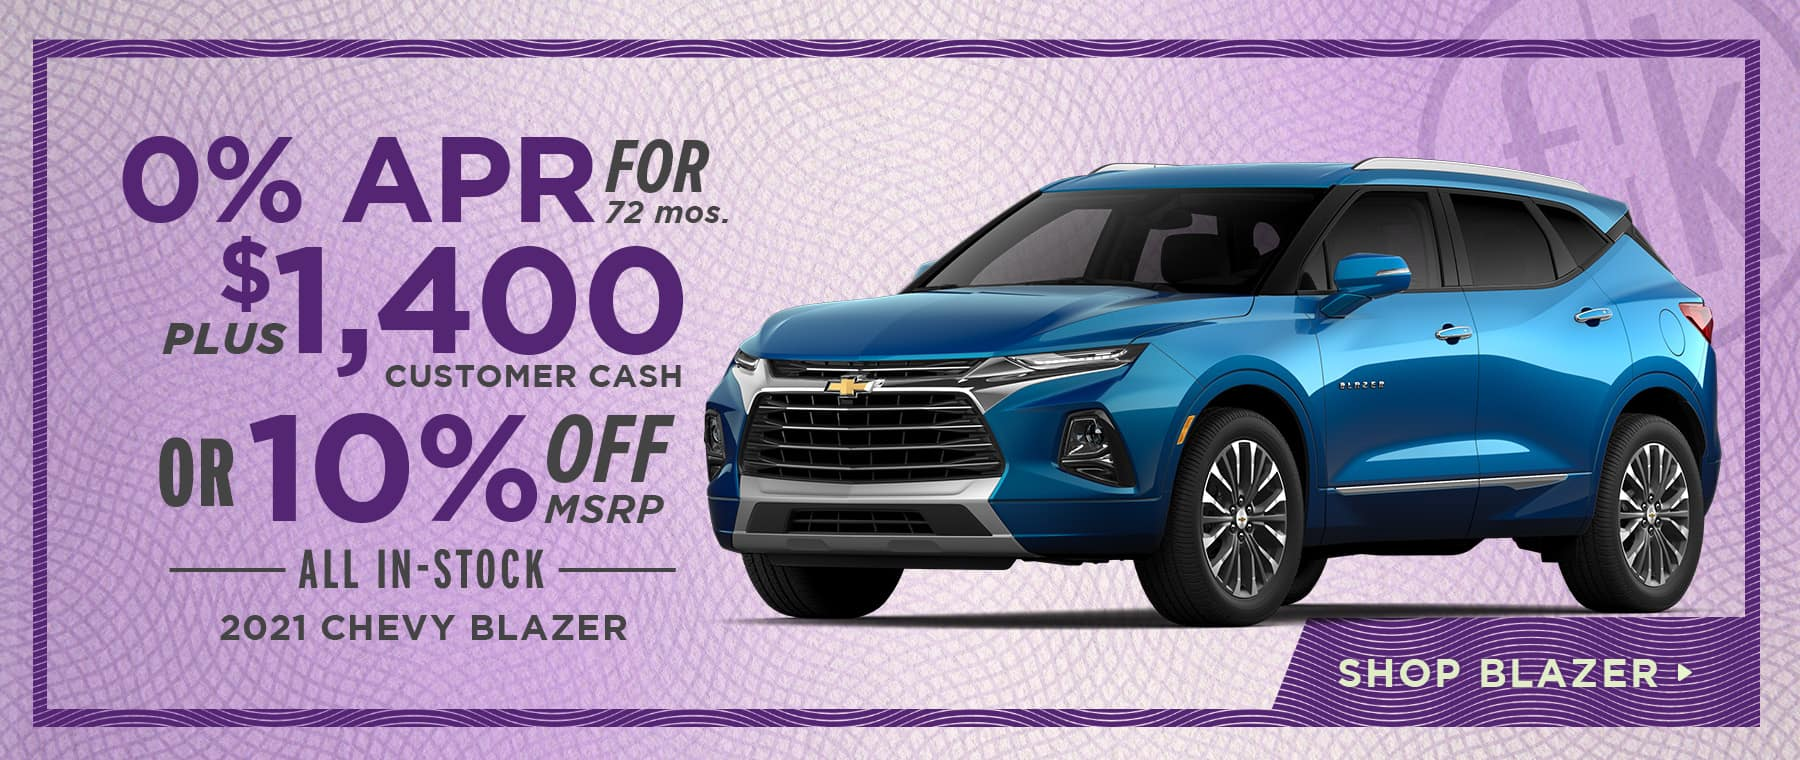 0% for 72 mos. PLUS $1,400 Customer Cash OR 10% Off All In-Stock 2021 Chevy Blazer